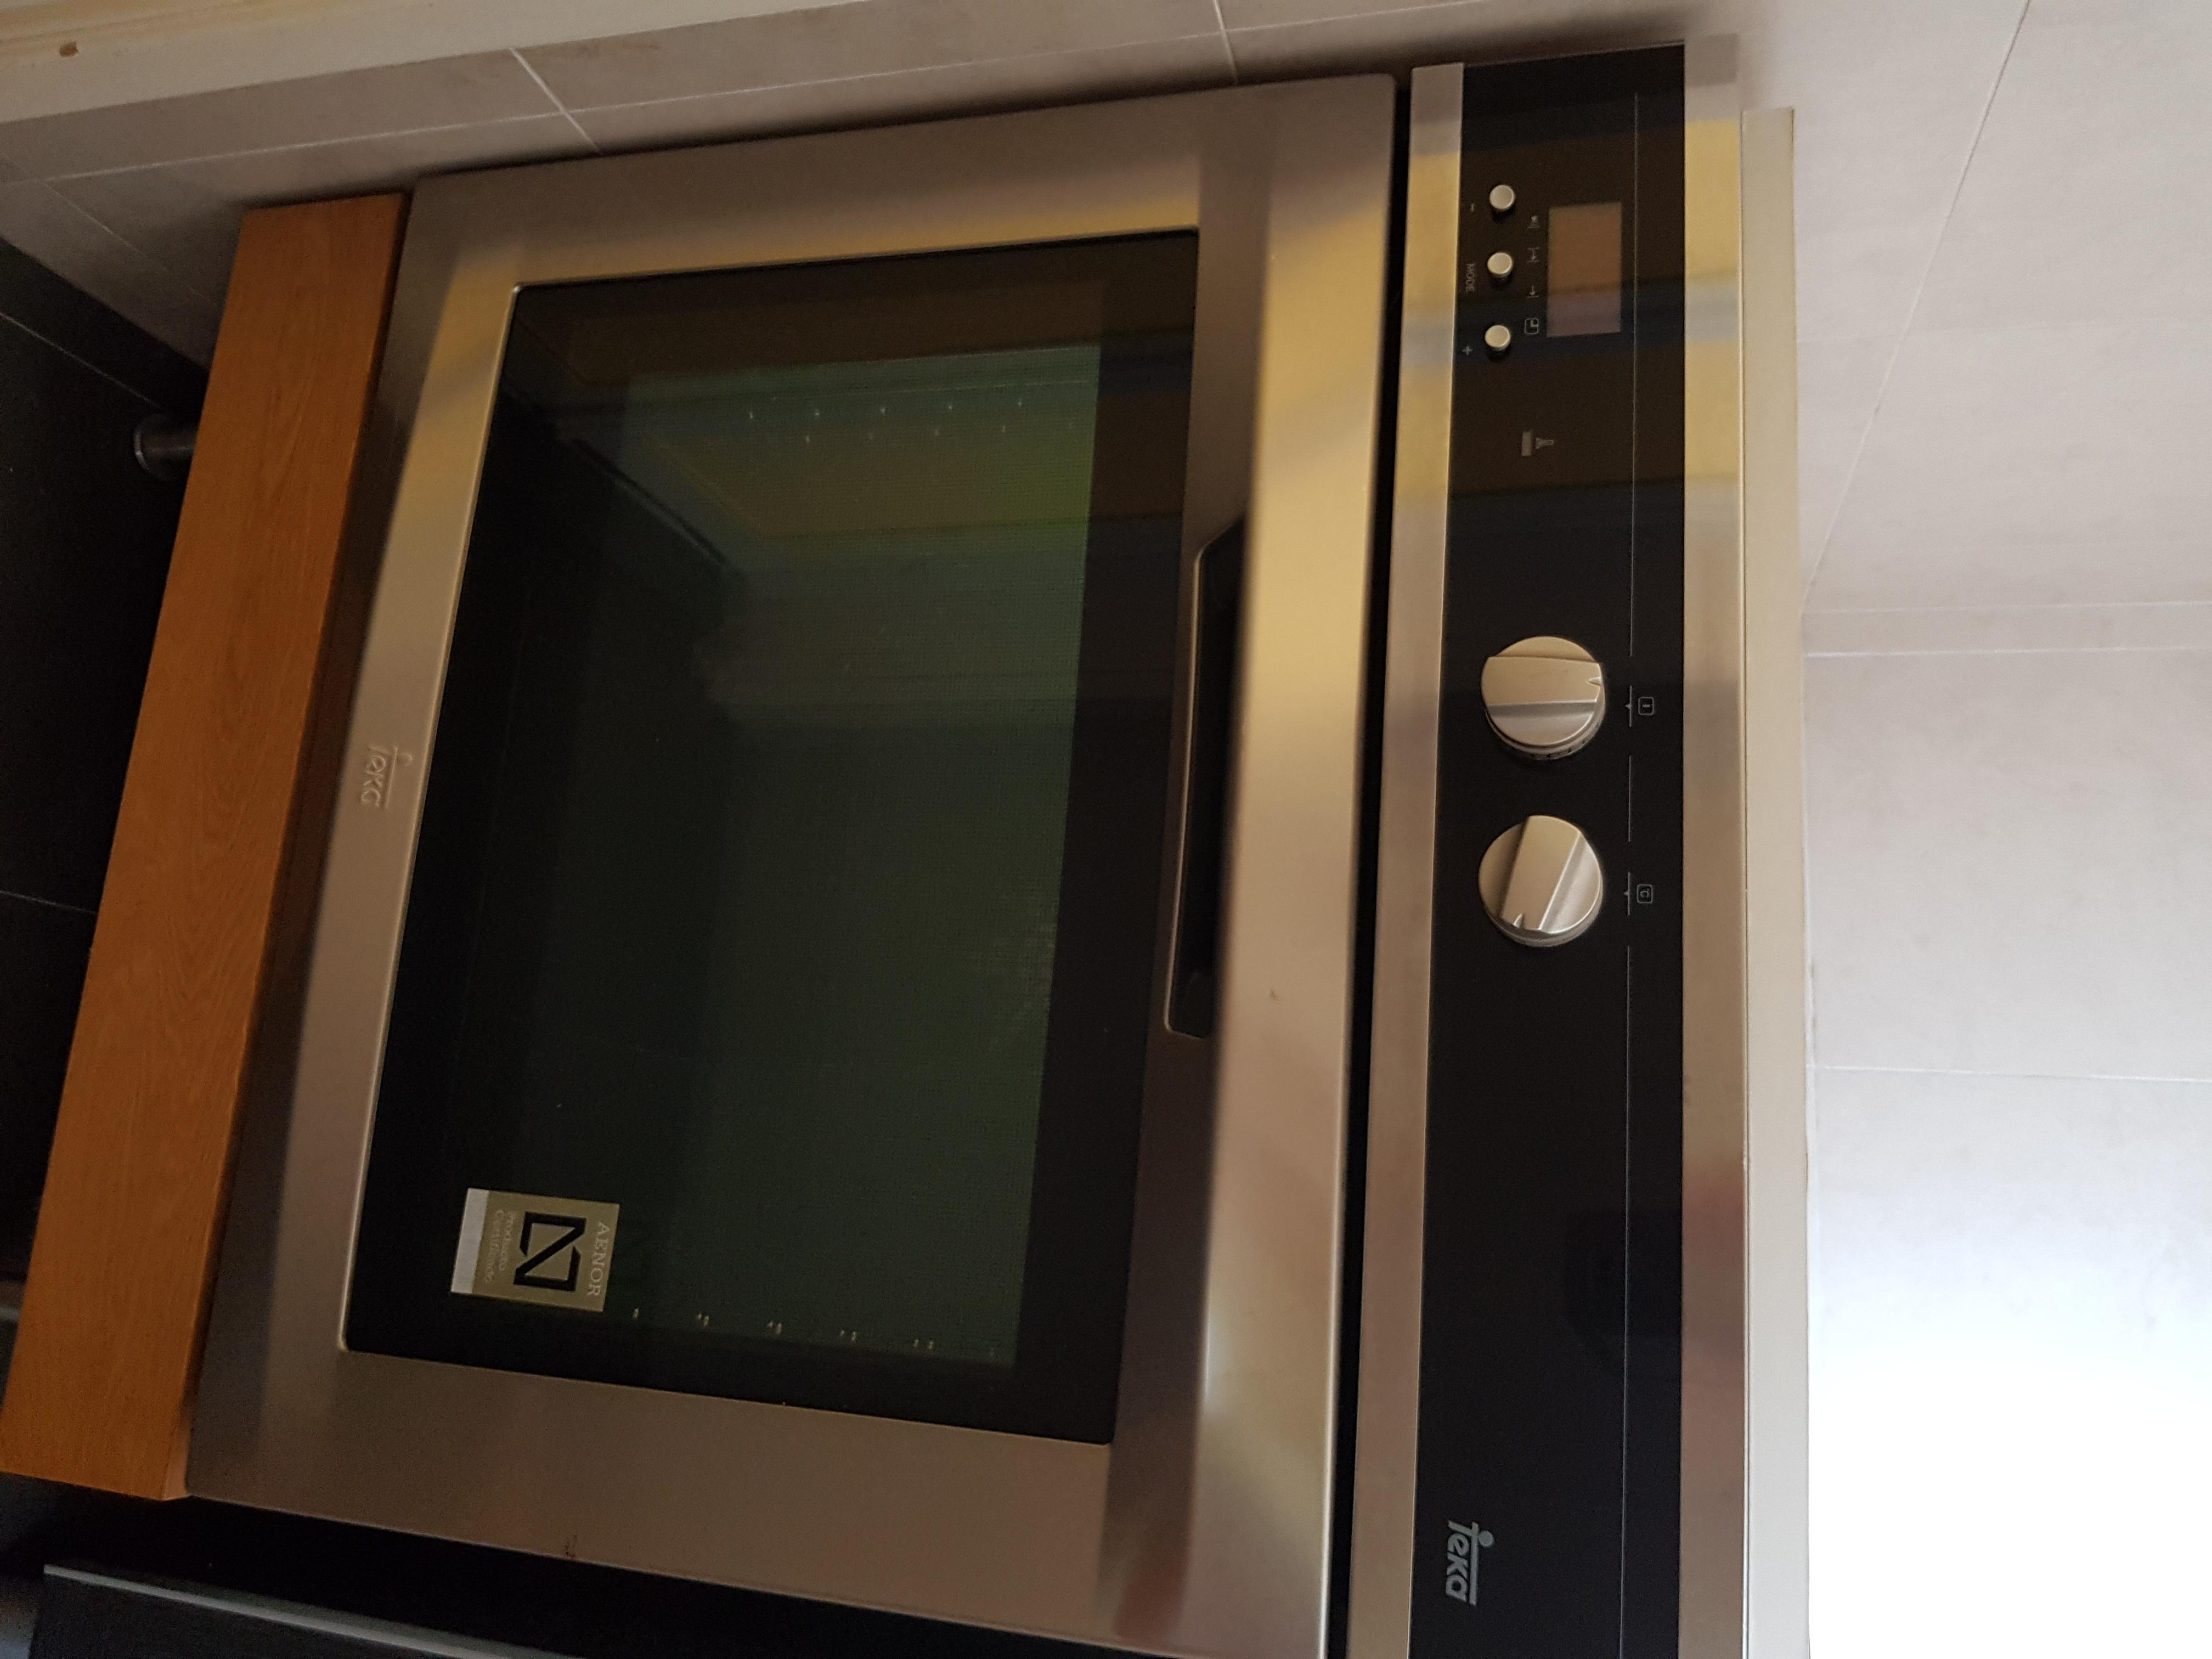 Base oven cabinets - Teka Electric Oven With Ikea Built In Cabinet Base